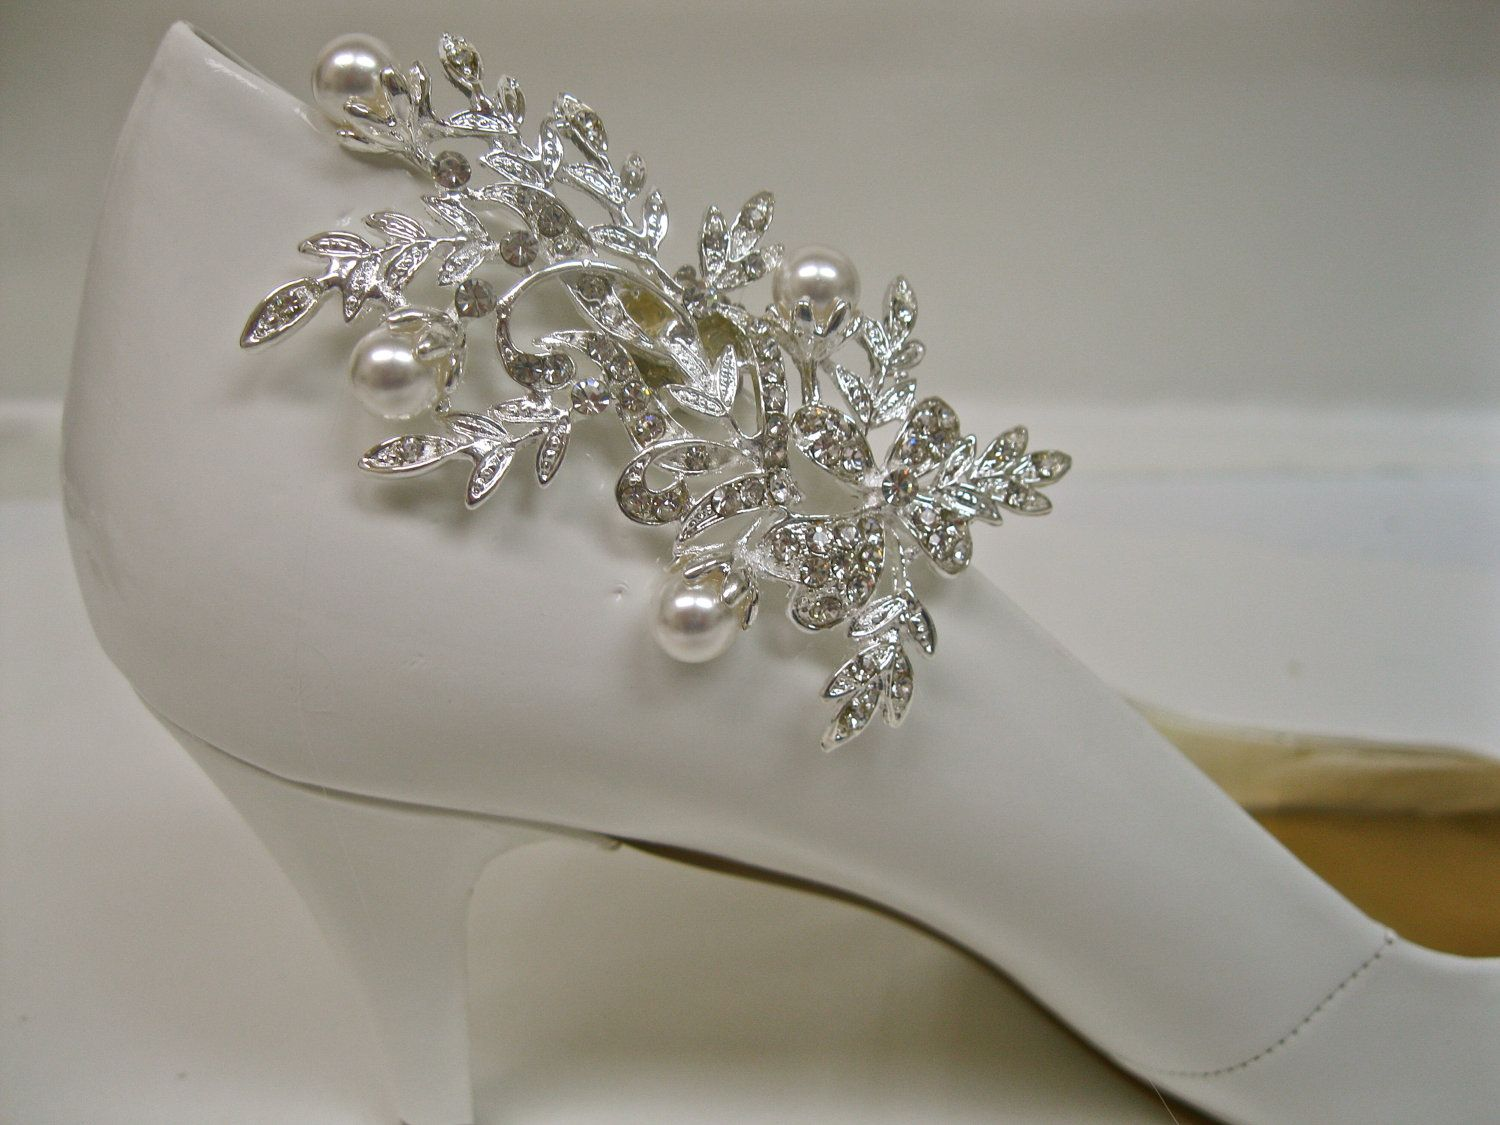 Mother Of The Bride Shoes And Accessories: Rhinestone Pearl Shoe Clips, Crystal Bridal Wedding Shoe